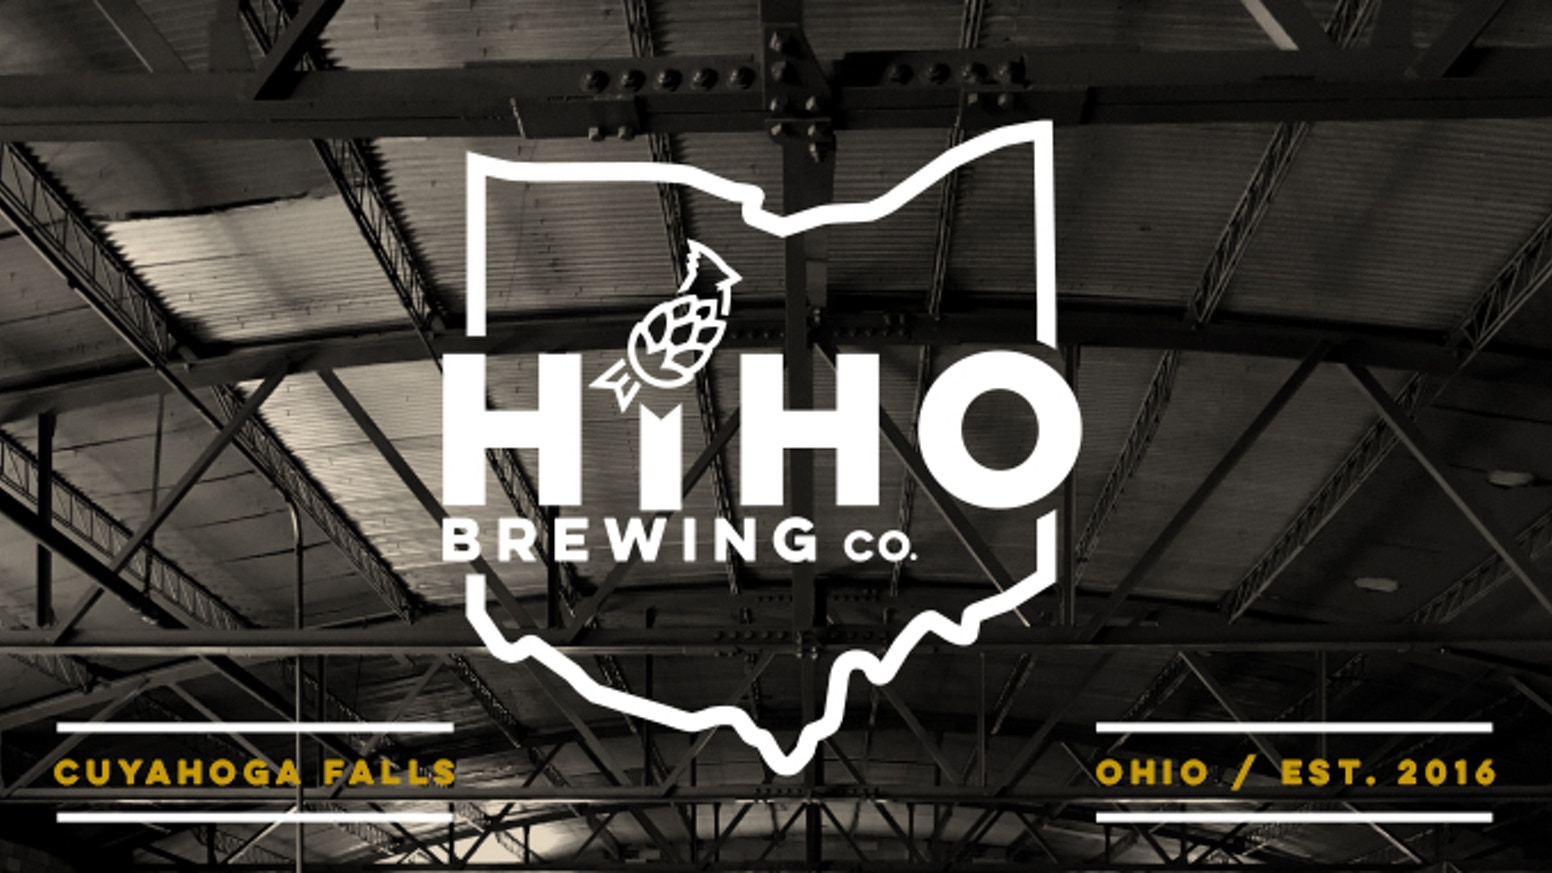 HiHO Brewing Company: Building a Brewery for the Community